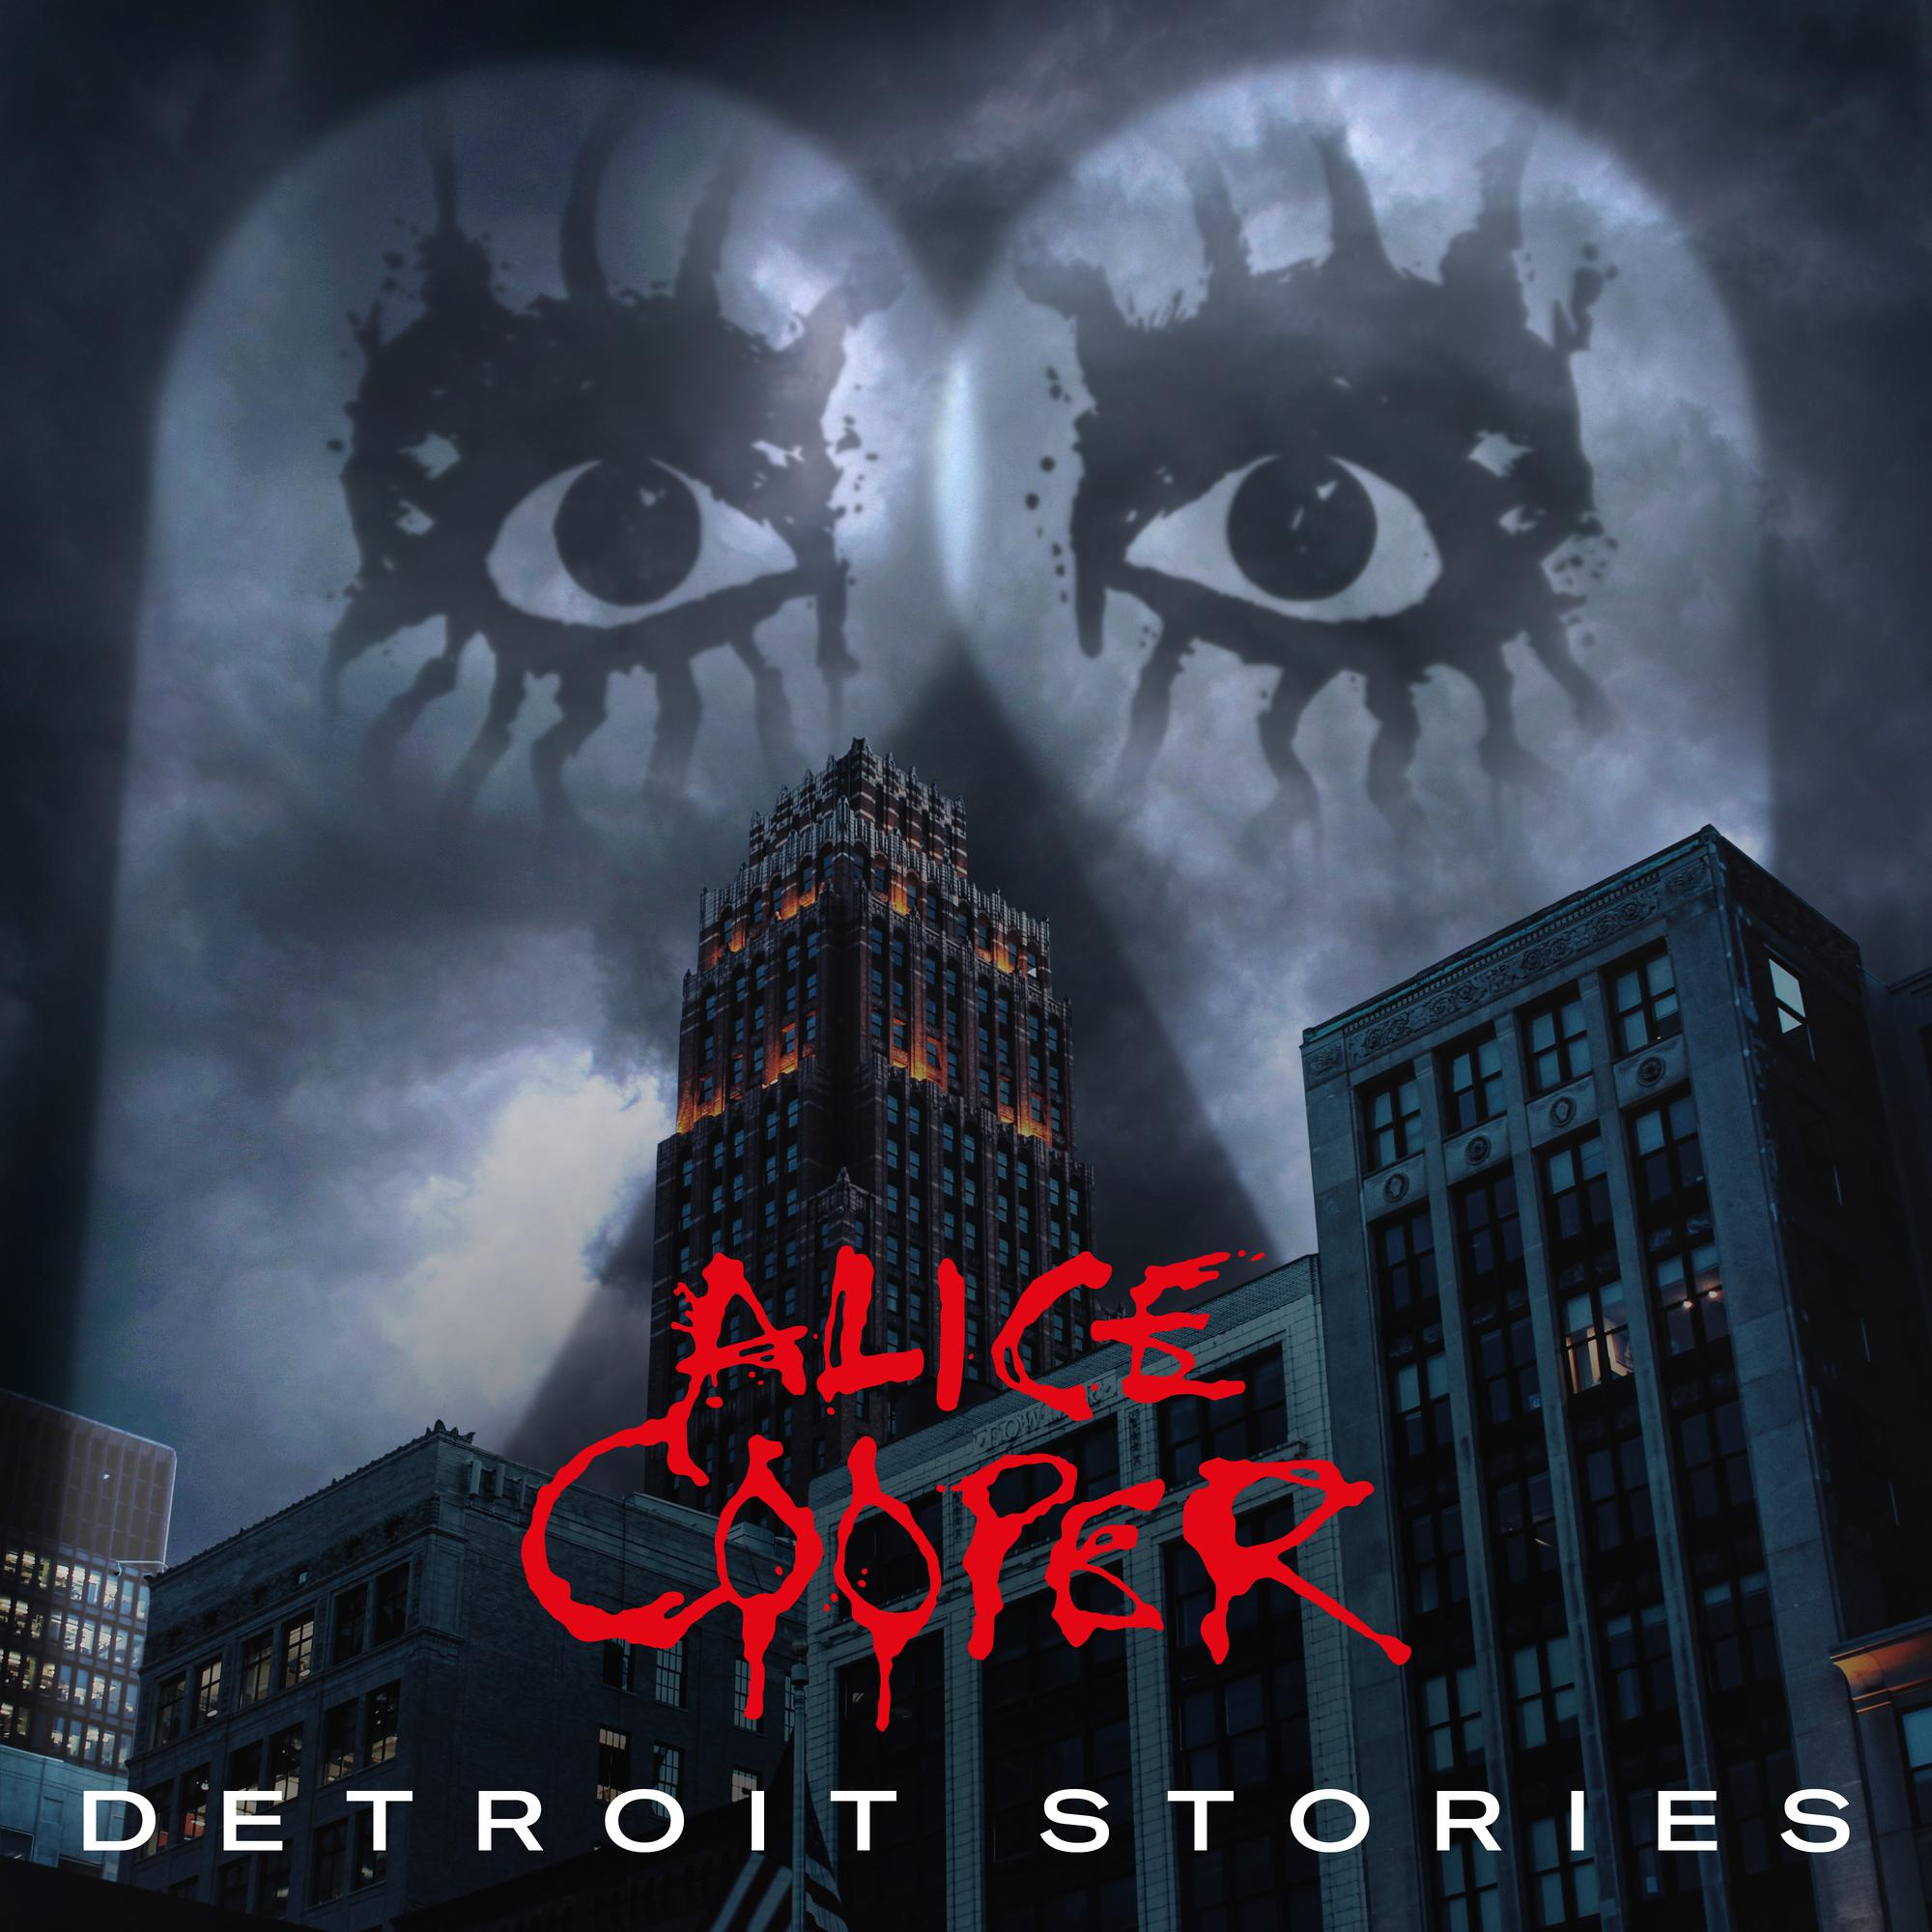 Alice Cooper - Detroit Stories [Indie Exclusive Limited Edition Red 2LP]